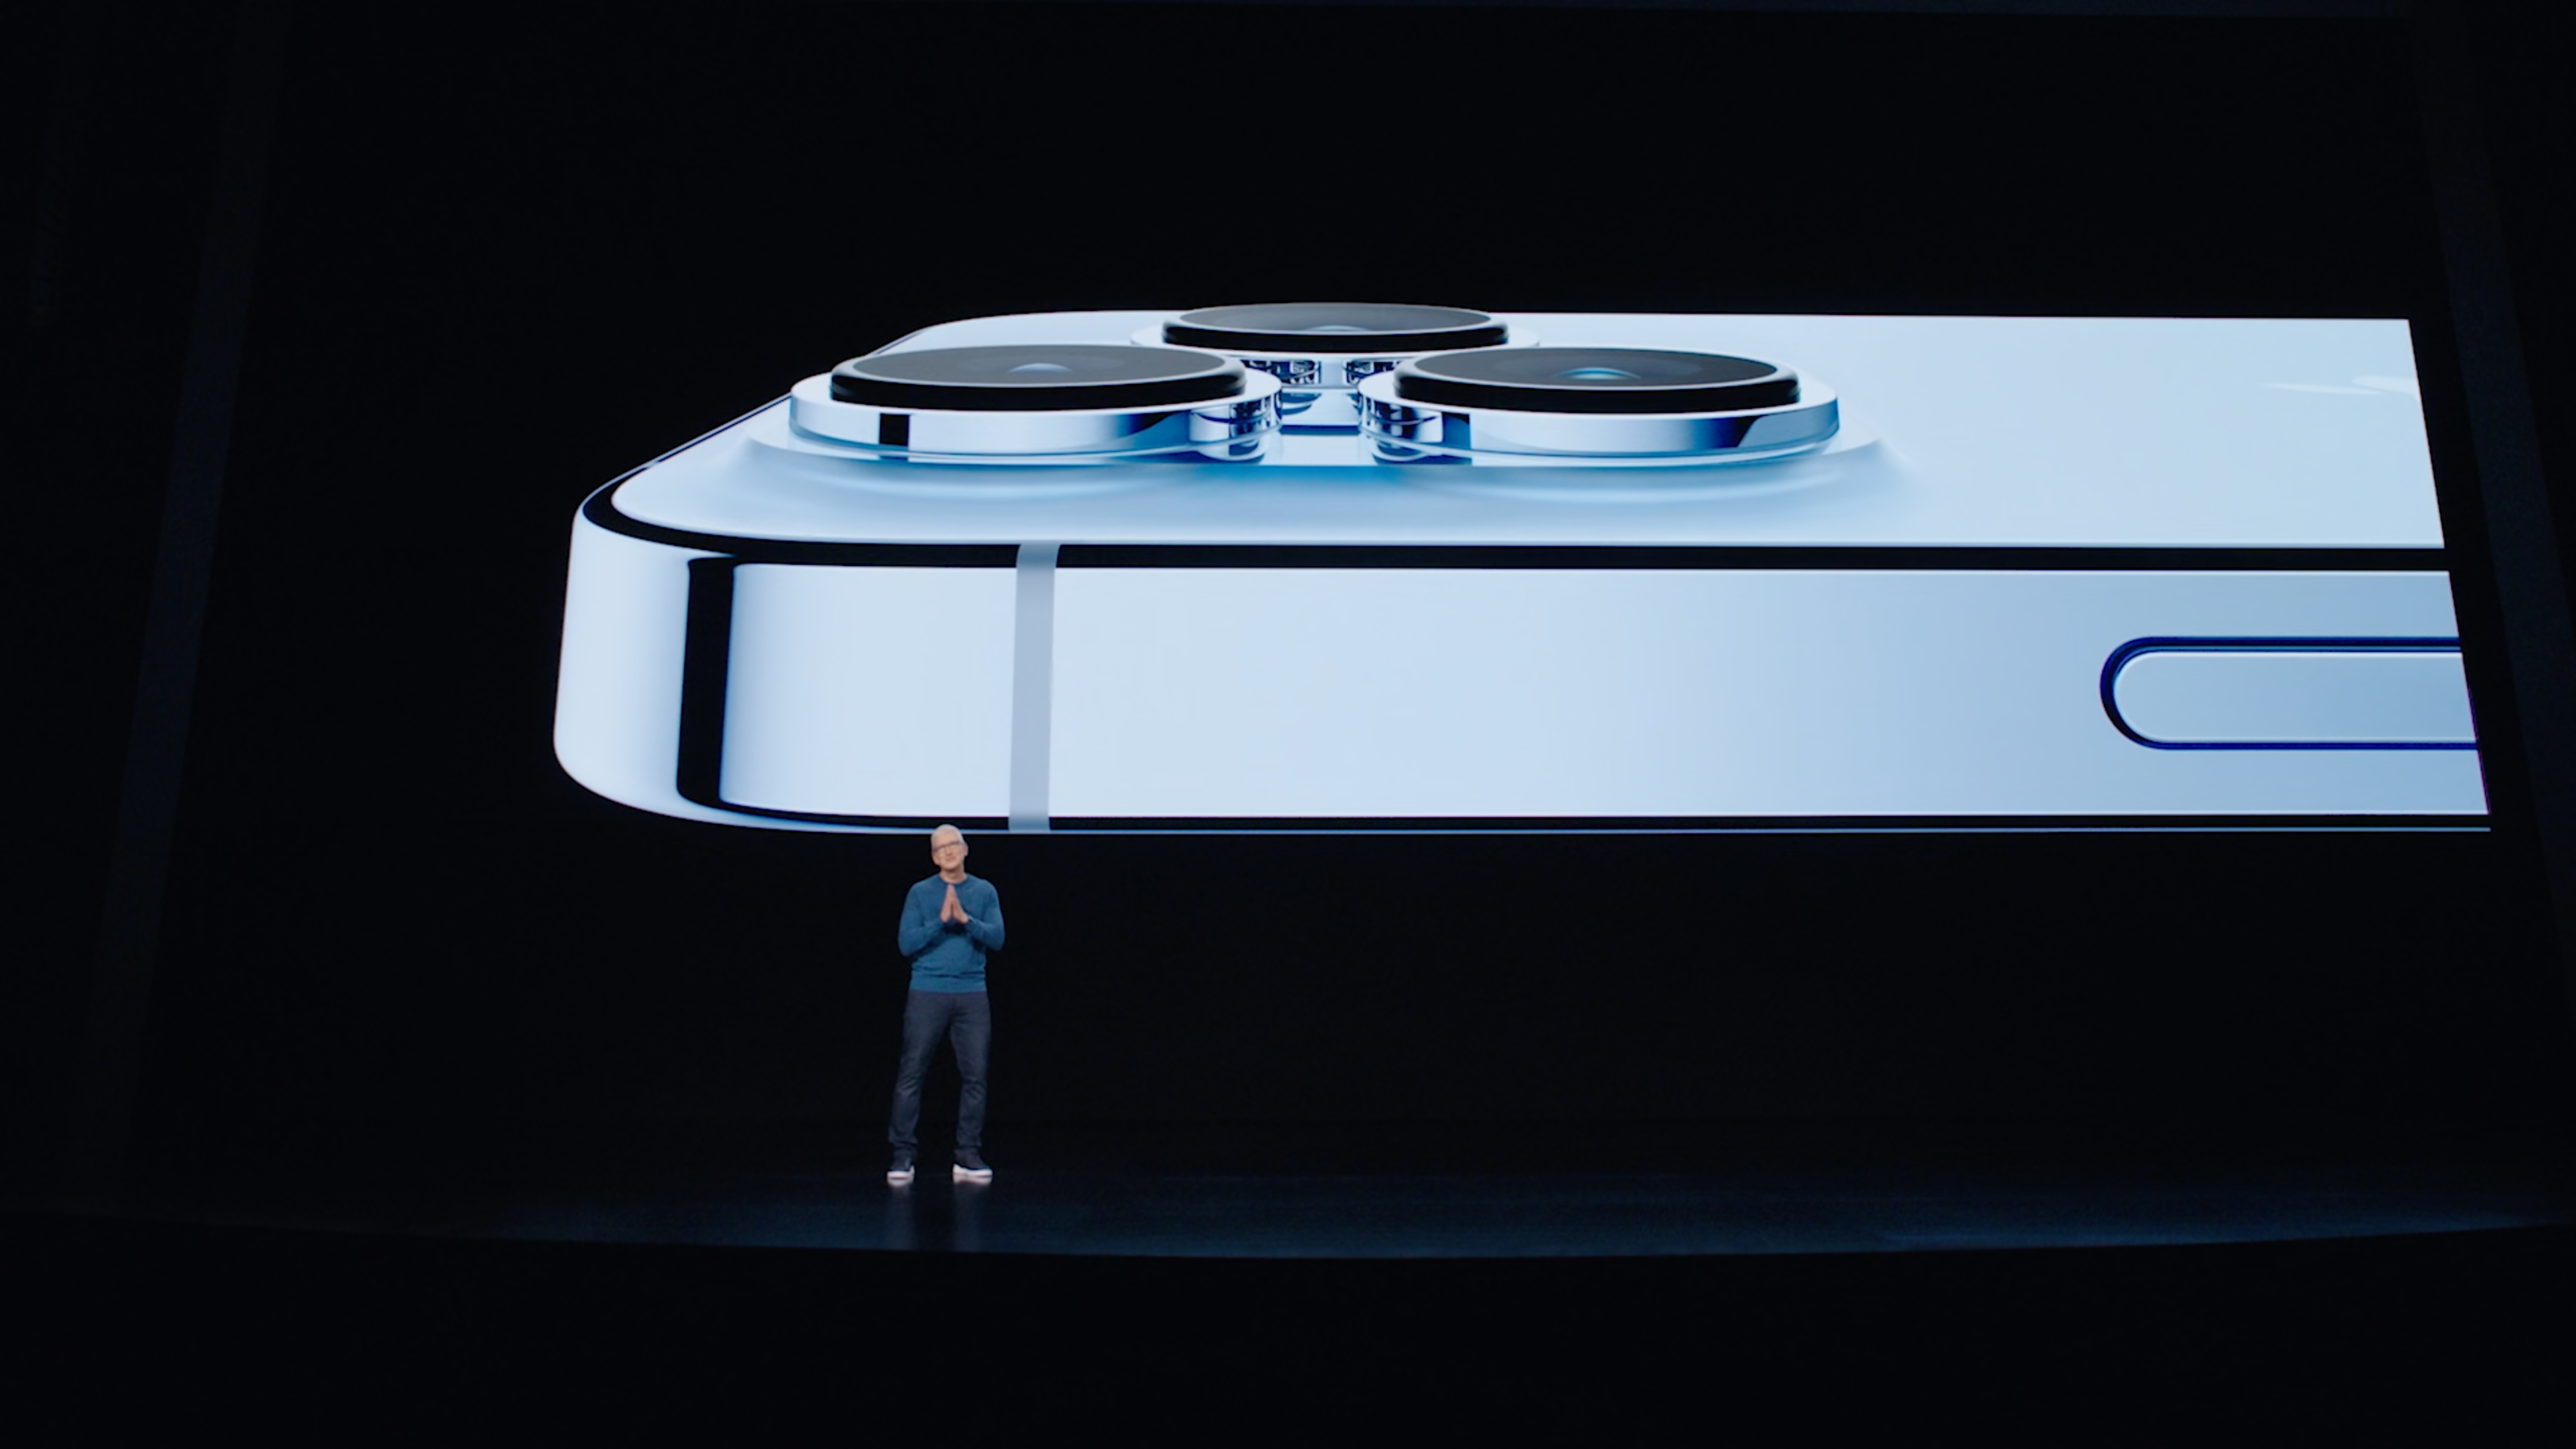 Tim Cook introducing the iPhone 13